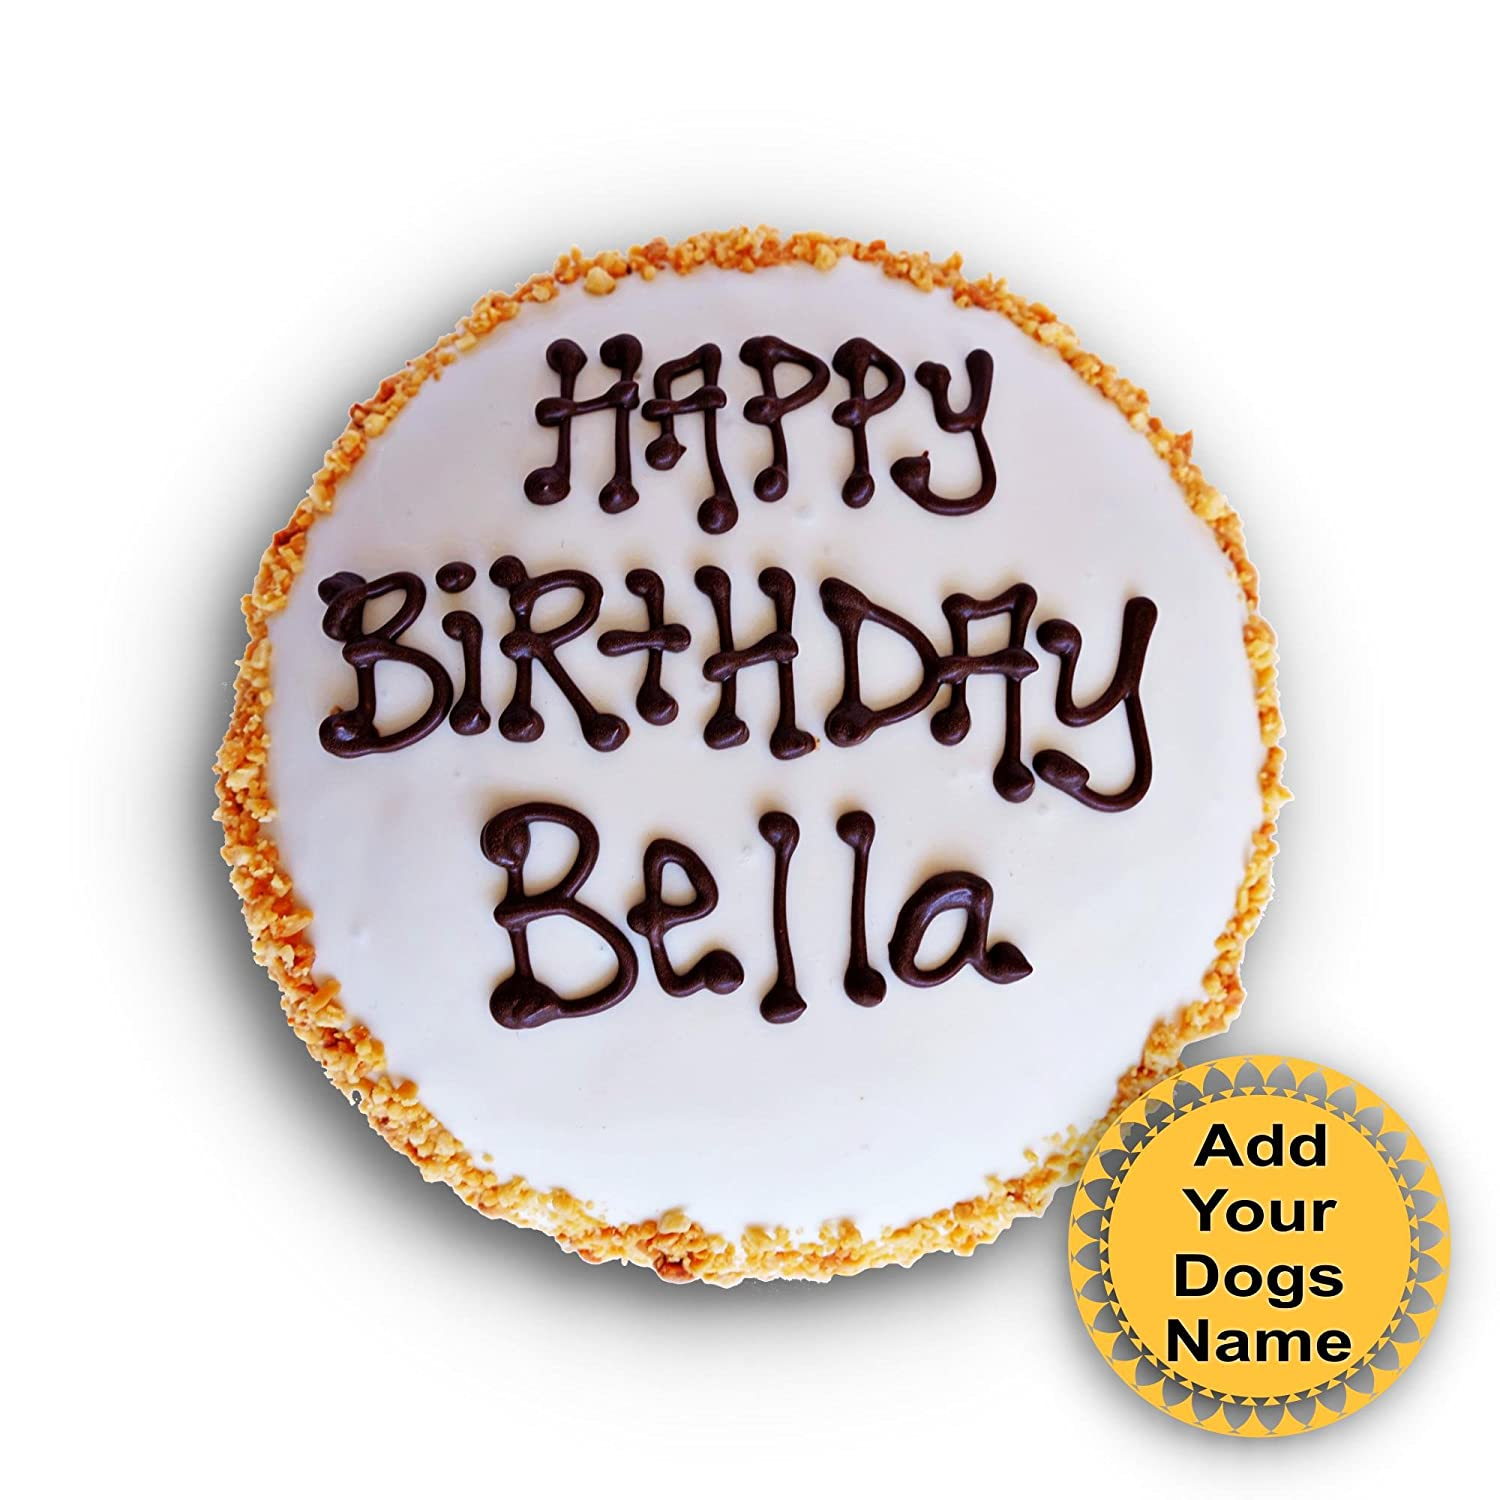 Amazon The Dog Bakery Birthday Cake Customize With Your Dogs Name Wheat Free Hand Made Tan Peanuts 5 Inch Circle Pet Supplies